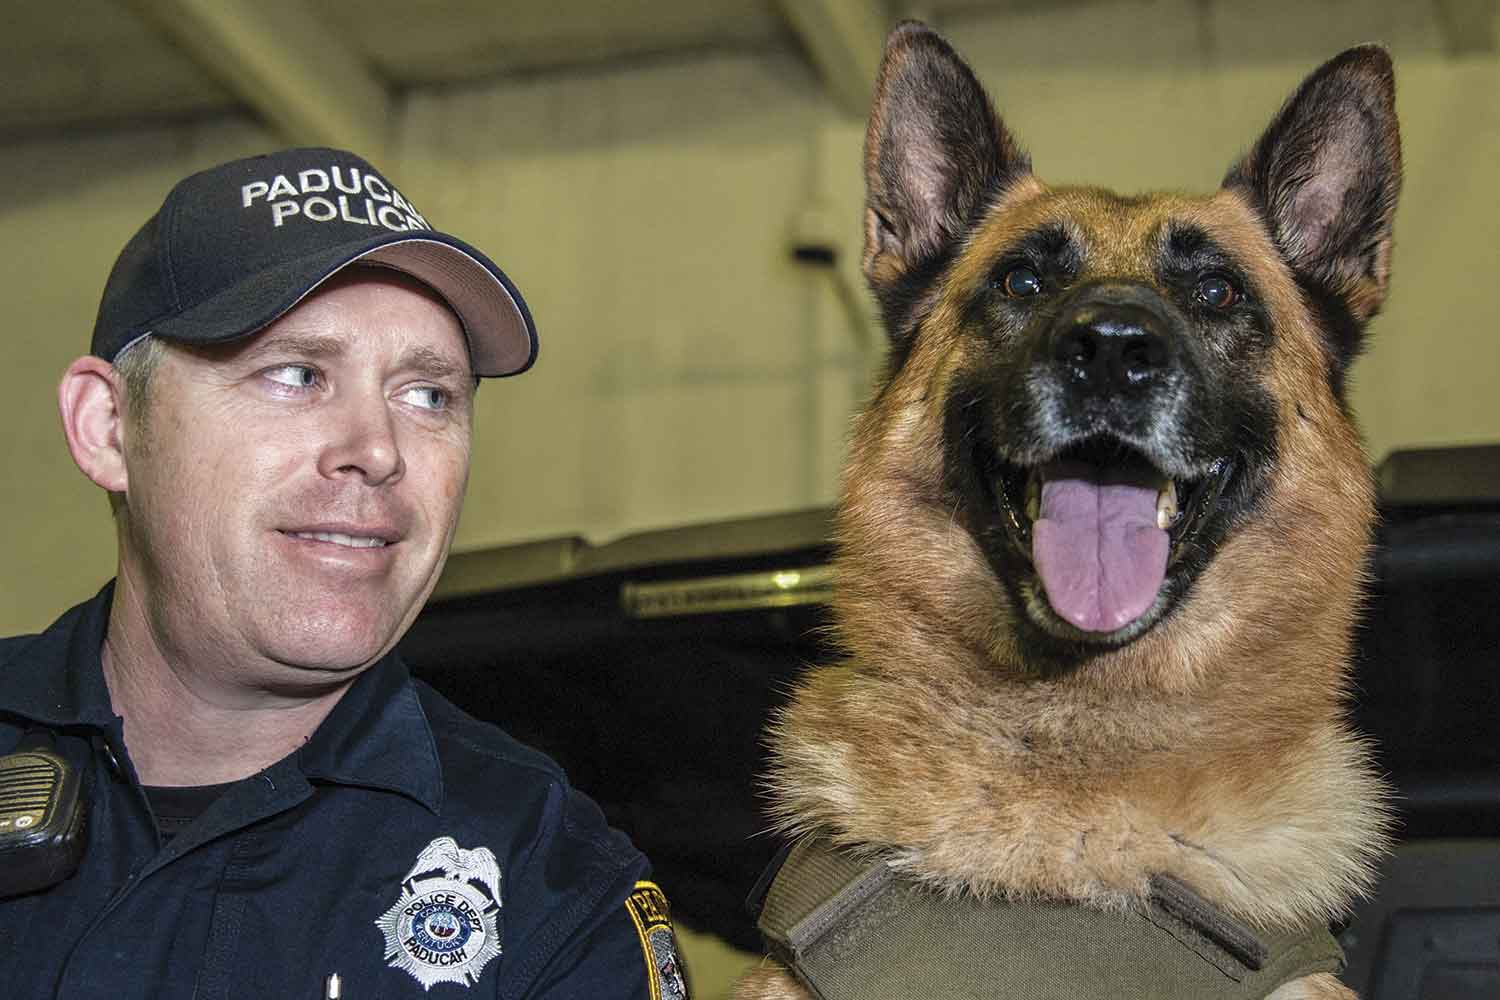 Paducah Police K-9 Officer Lofton Rowley Jr. knew at first sight that Fox was the perfect dog for him. That feeling was solidified when he brought Fox home and his Vohne Liche kennel-issued collar number was the same as his badge number — 278. The hard-working, people-loving K-9 has been a perfect match for Rowley for the past five years. (Photo by Jim Robertson)